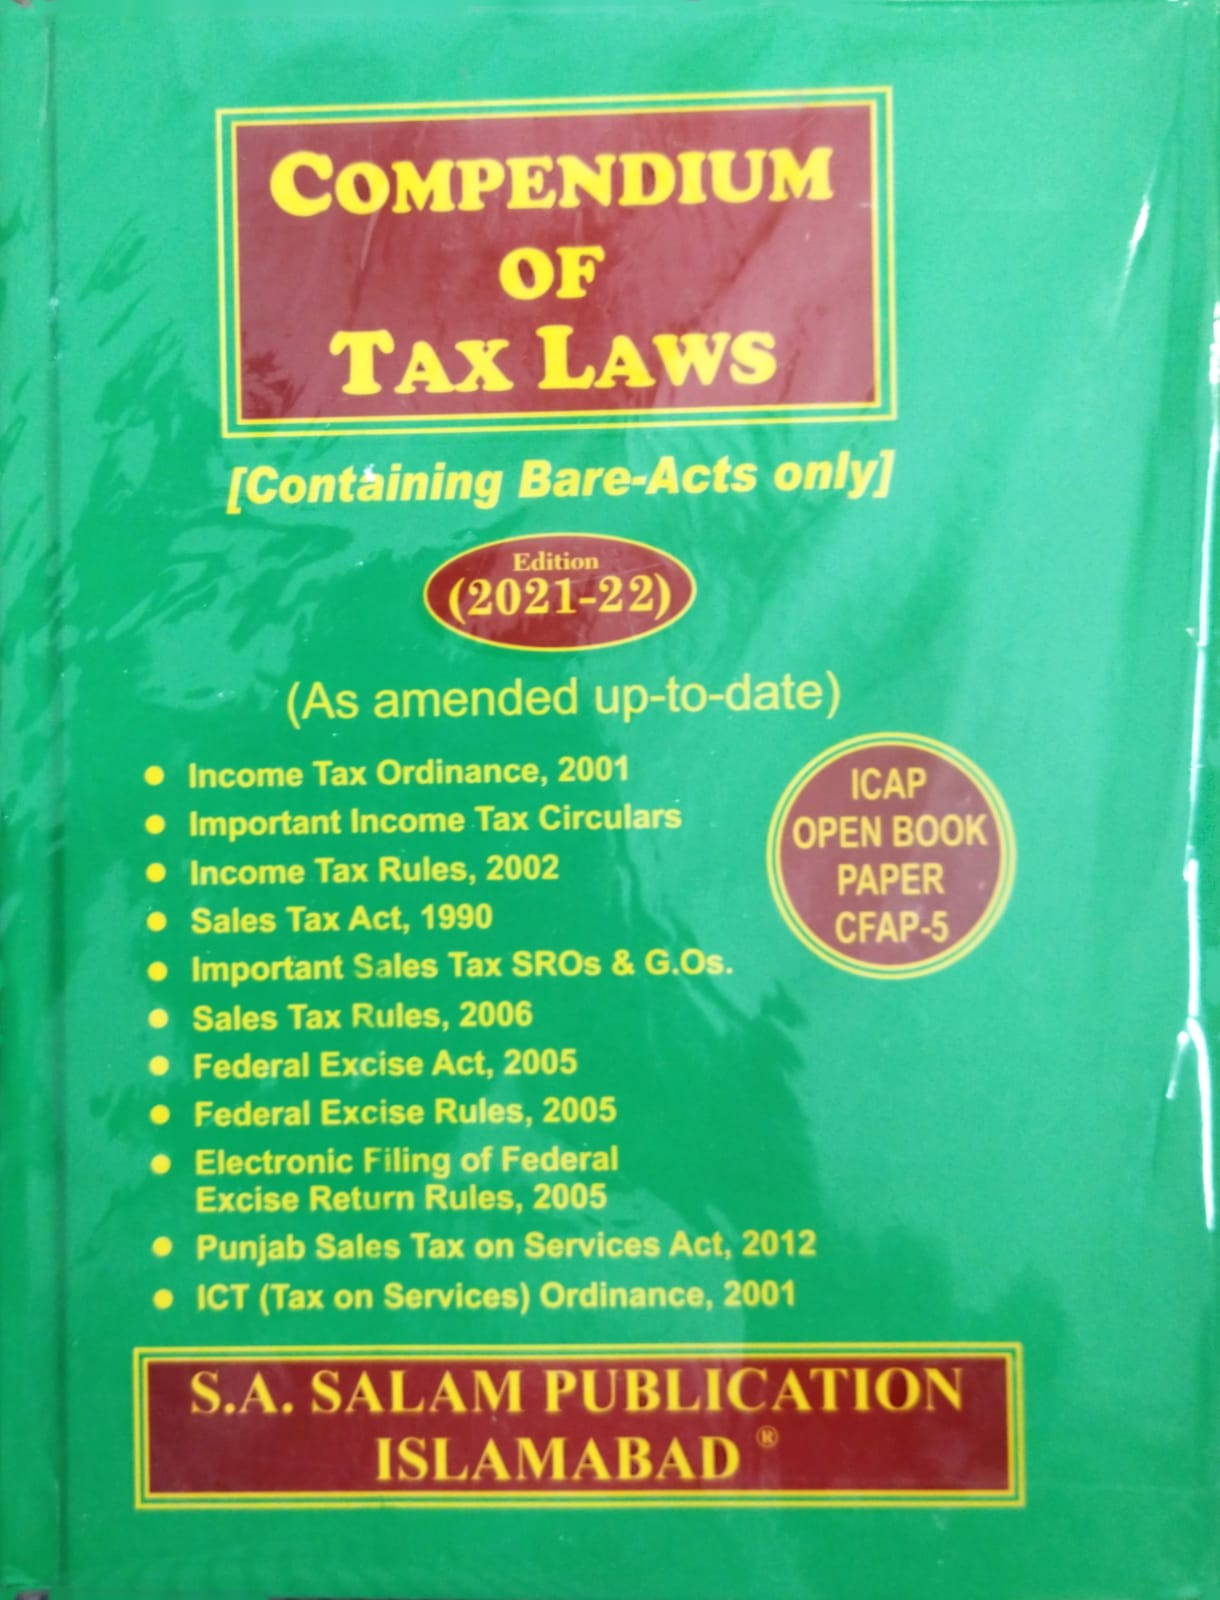 Compendium of Tax Laws (Containing Bare Acts Only) 2021-2022 Edition